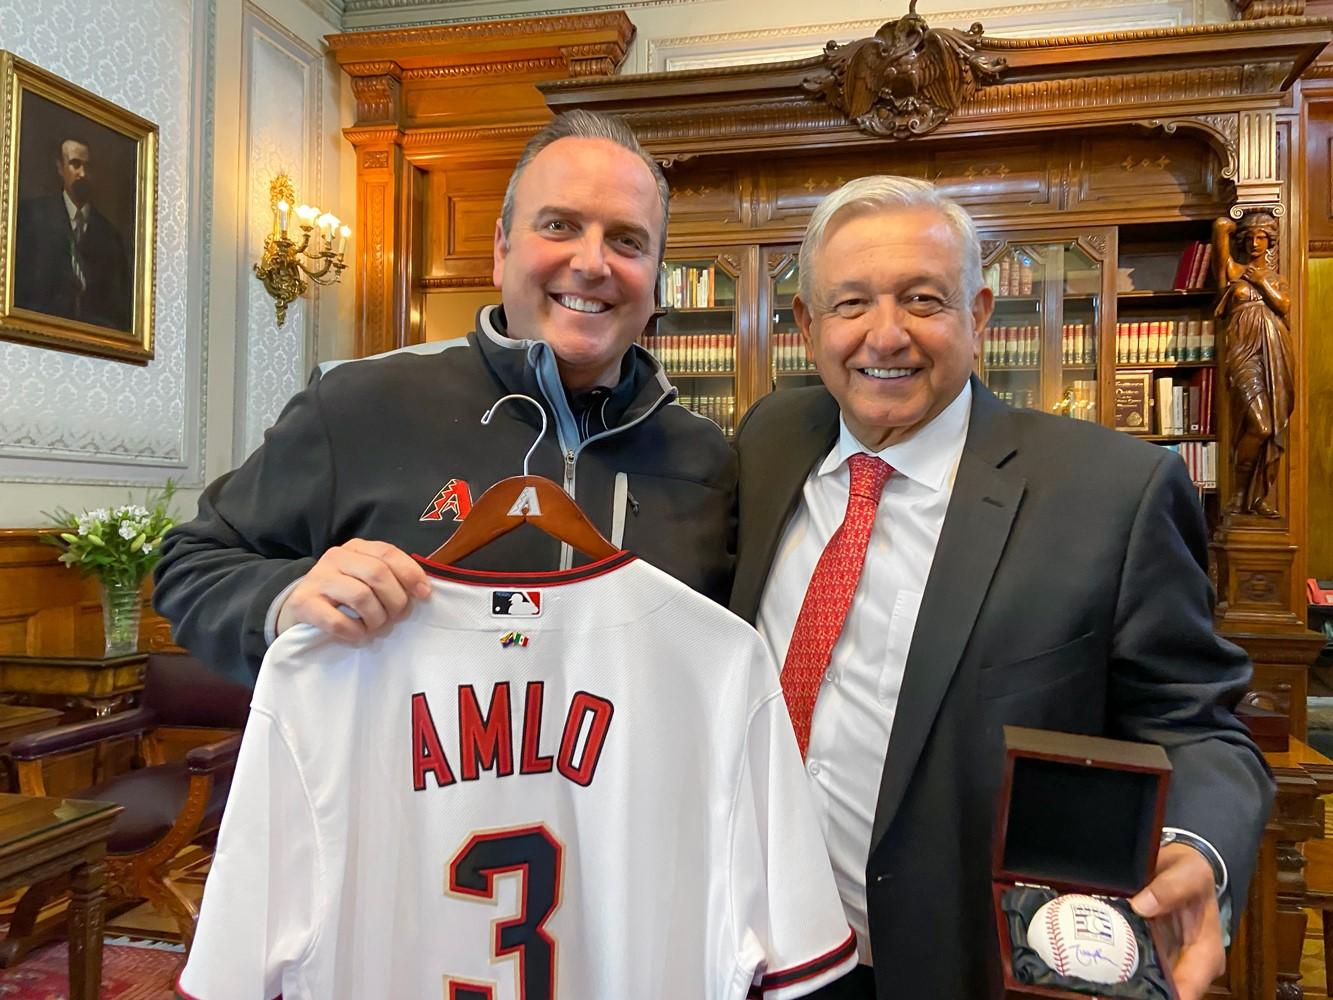 Derrick Hall, president and CEO of the Diamondbacks, with Mexican president Andrés Manuel López Obrador